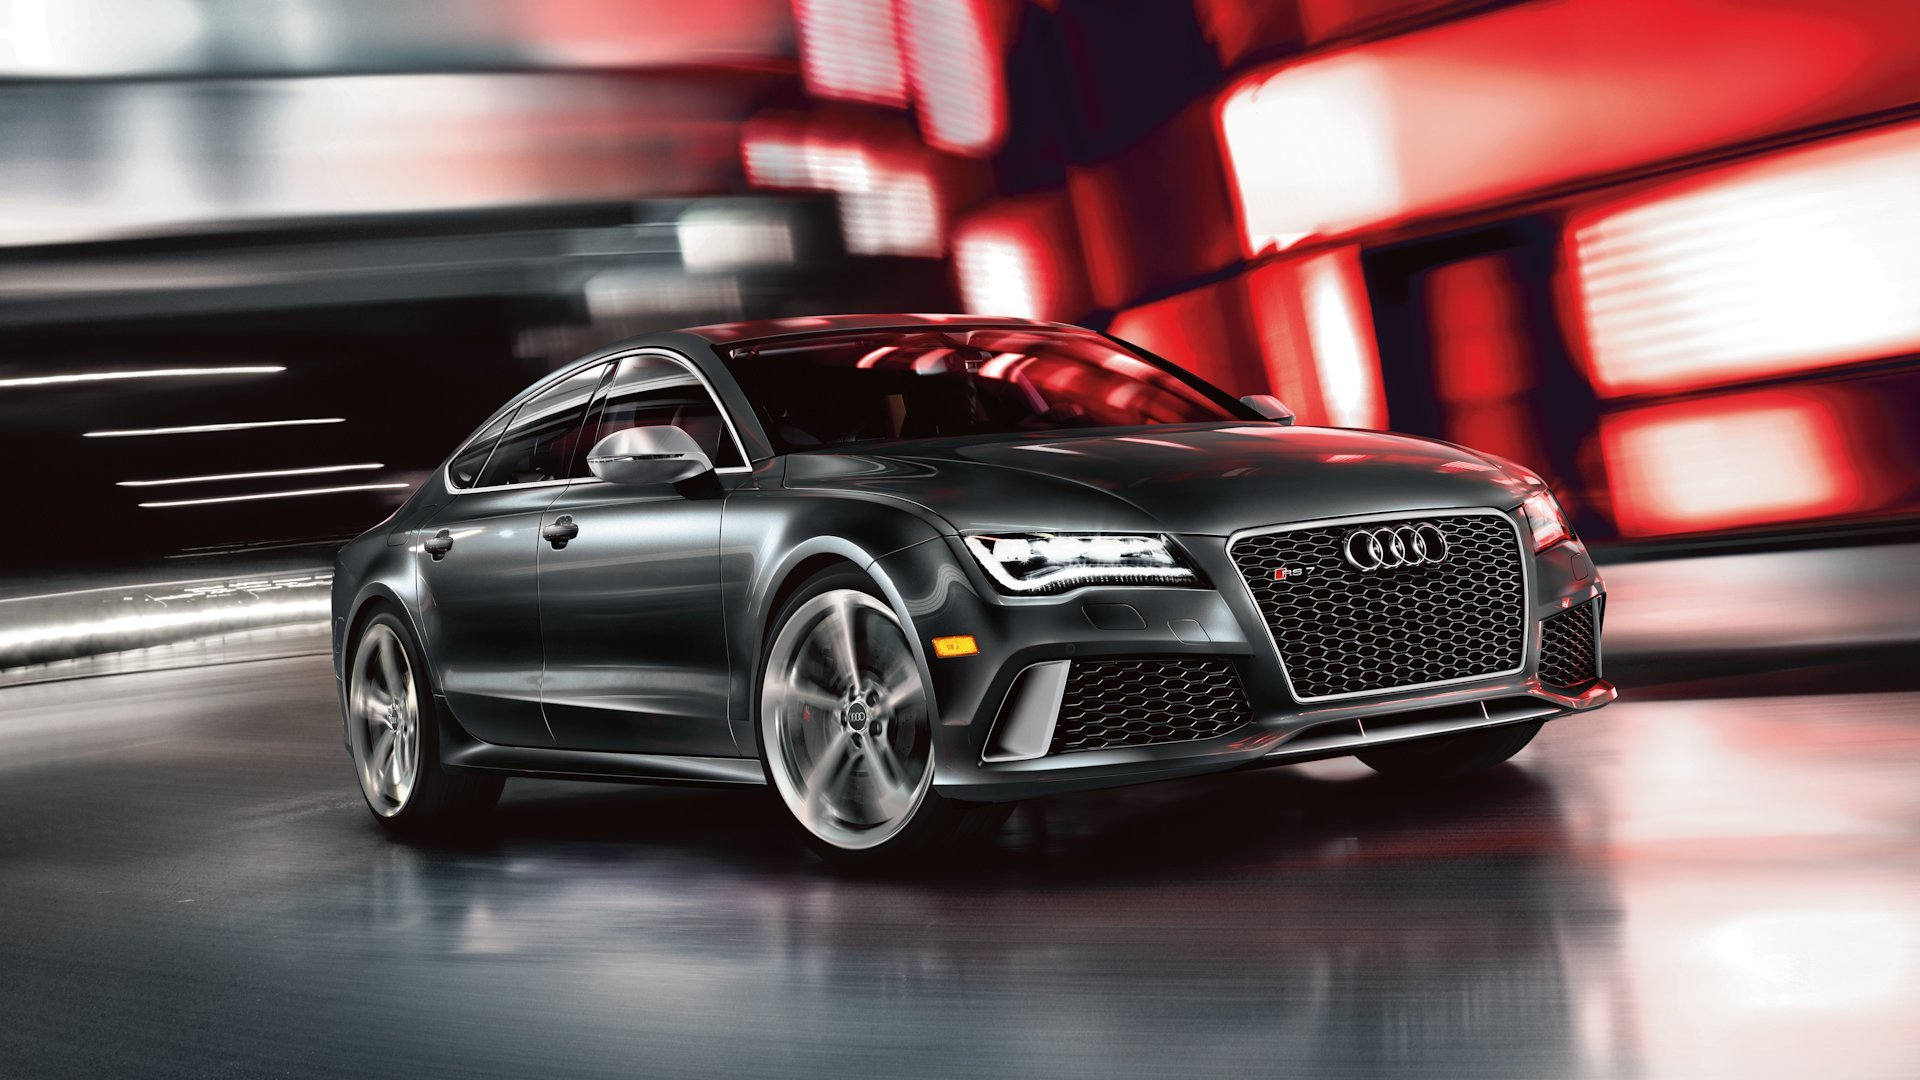 Audi Wallpapers Iphone Free Sports Car Full Hd Cars Download